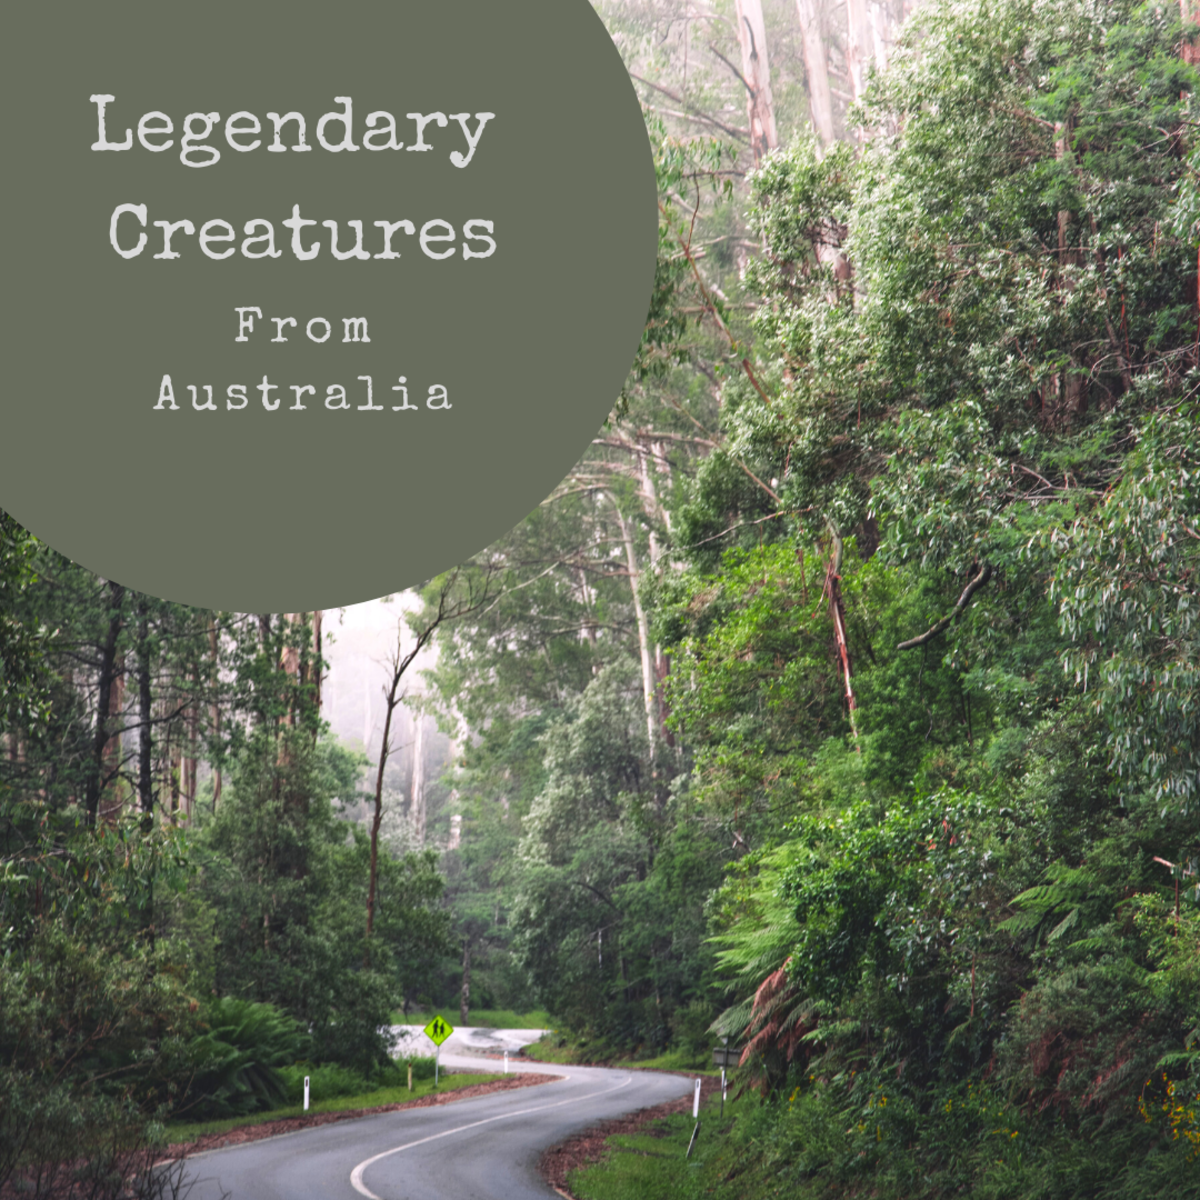 Australia is home to many mysterious creatures.